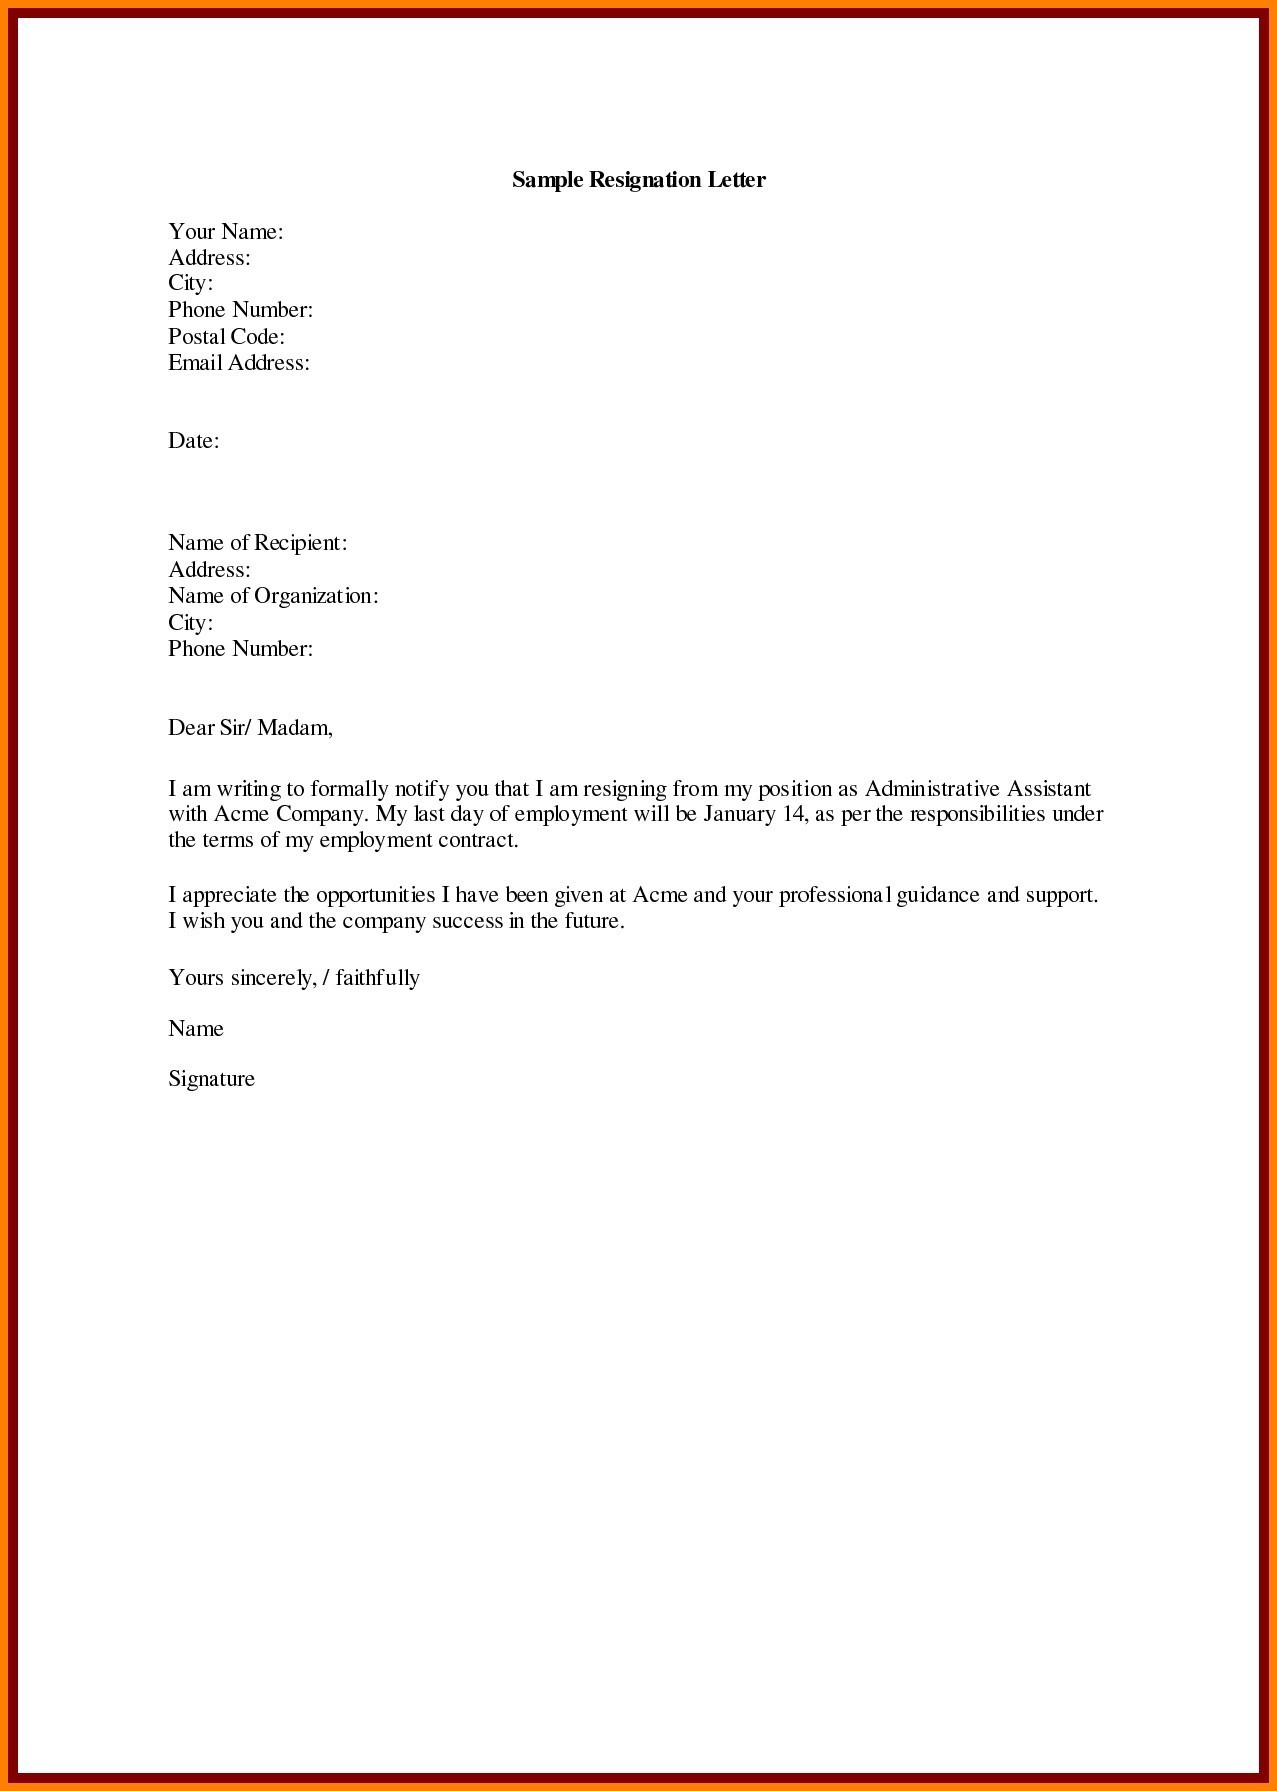 immediate resignation letter template sample resignation letter template doc copy samples resignation